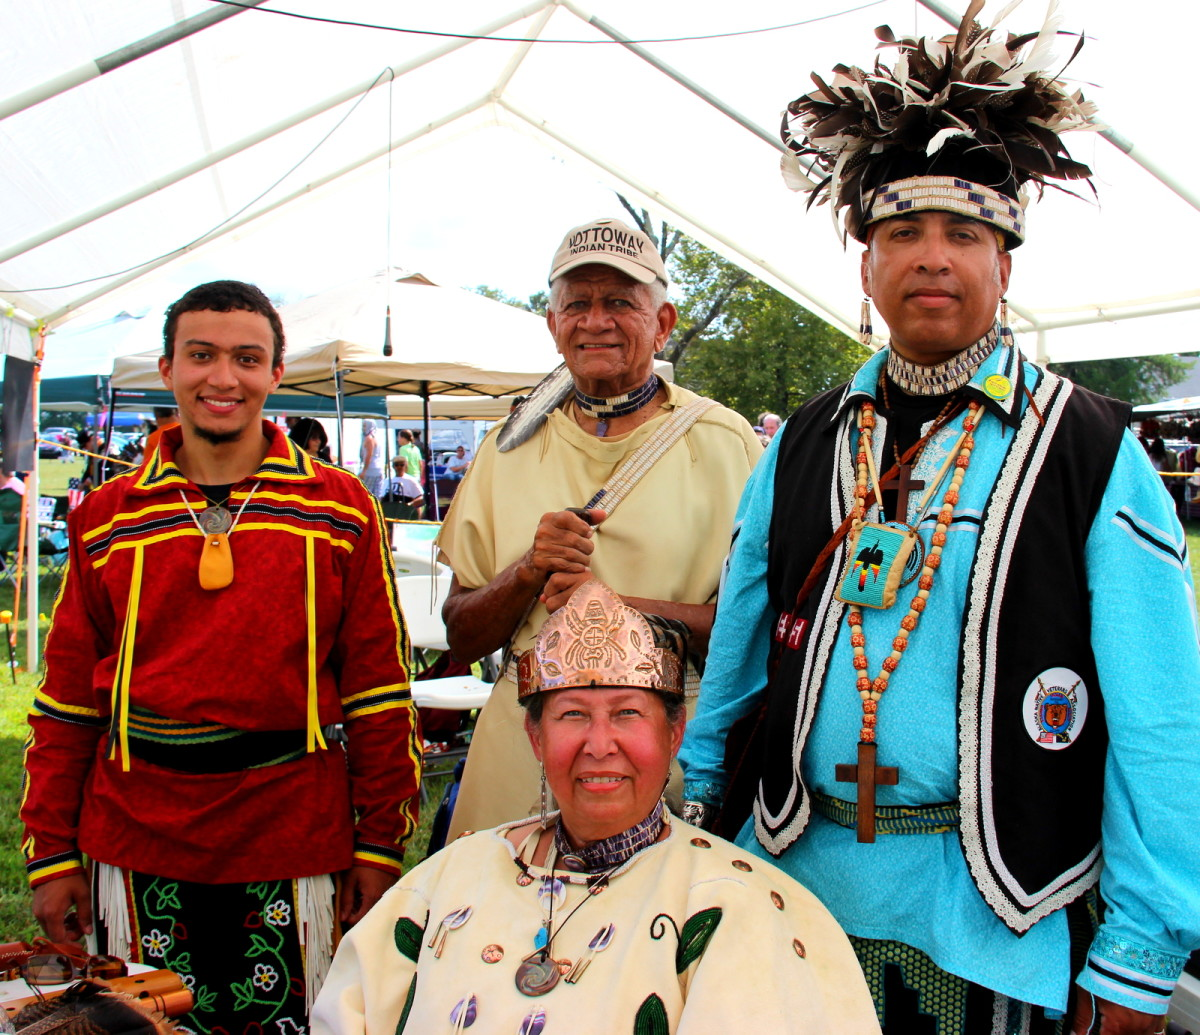 Chief Lynette Allston (center, seated) is proud of the male warriors in her tribe - Photo: Vincent Schilling